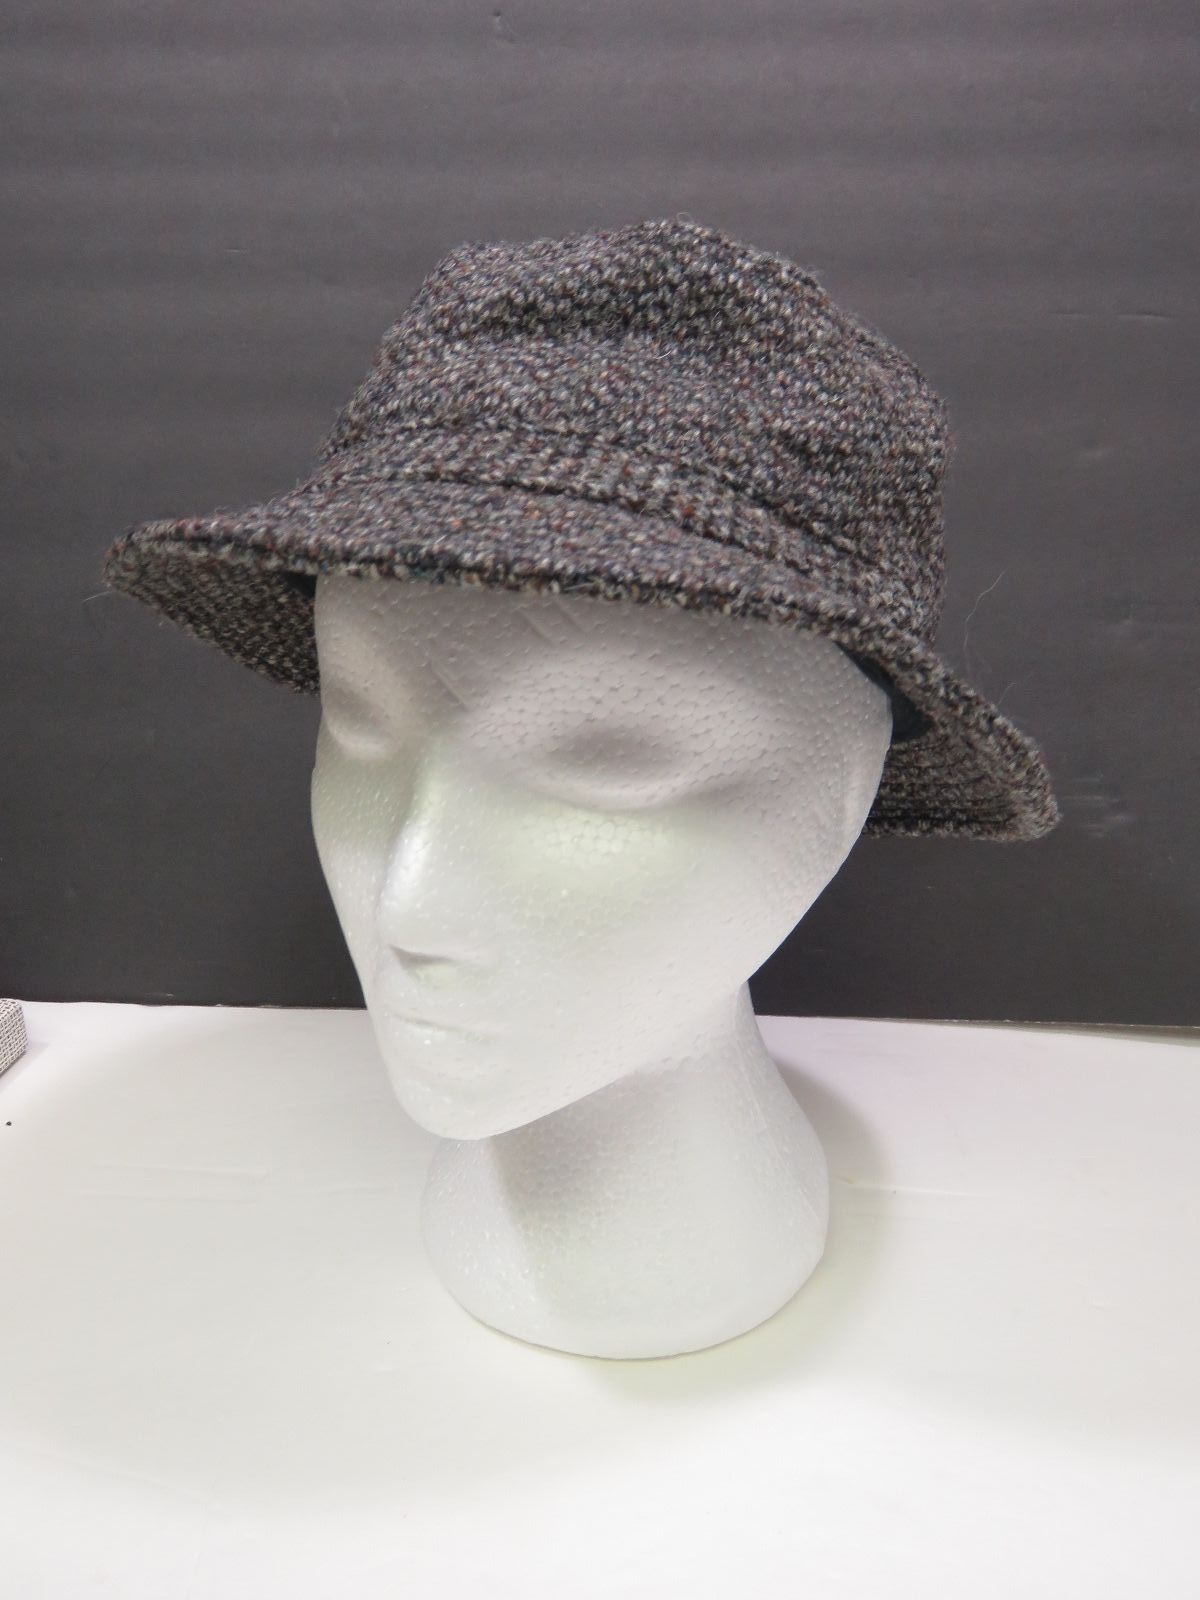 696bcc44d64c8 Vintage LL Bean Harris Tweed Irish Walking Bucket Hat Sz Men s Small  Gore-Tex